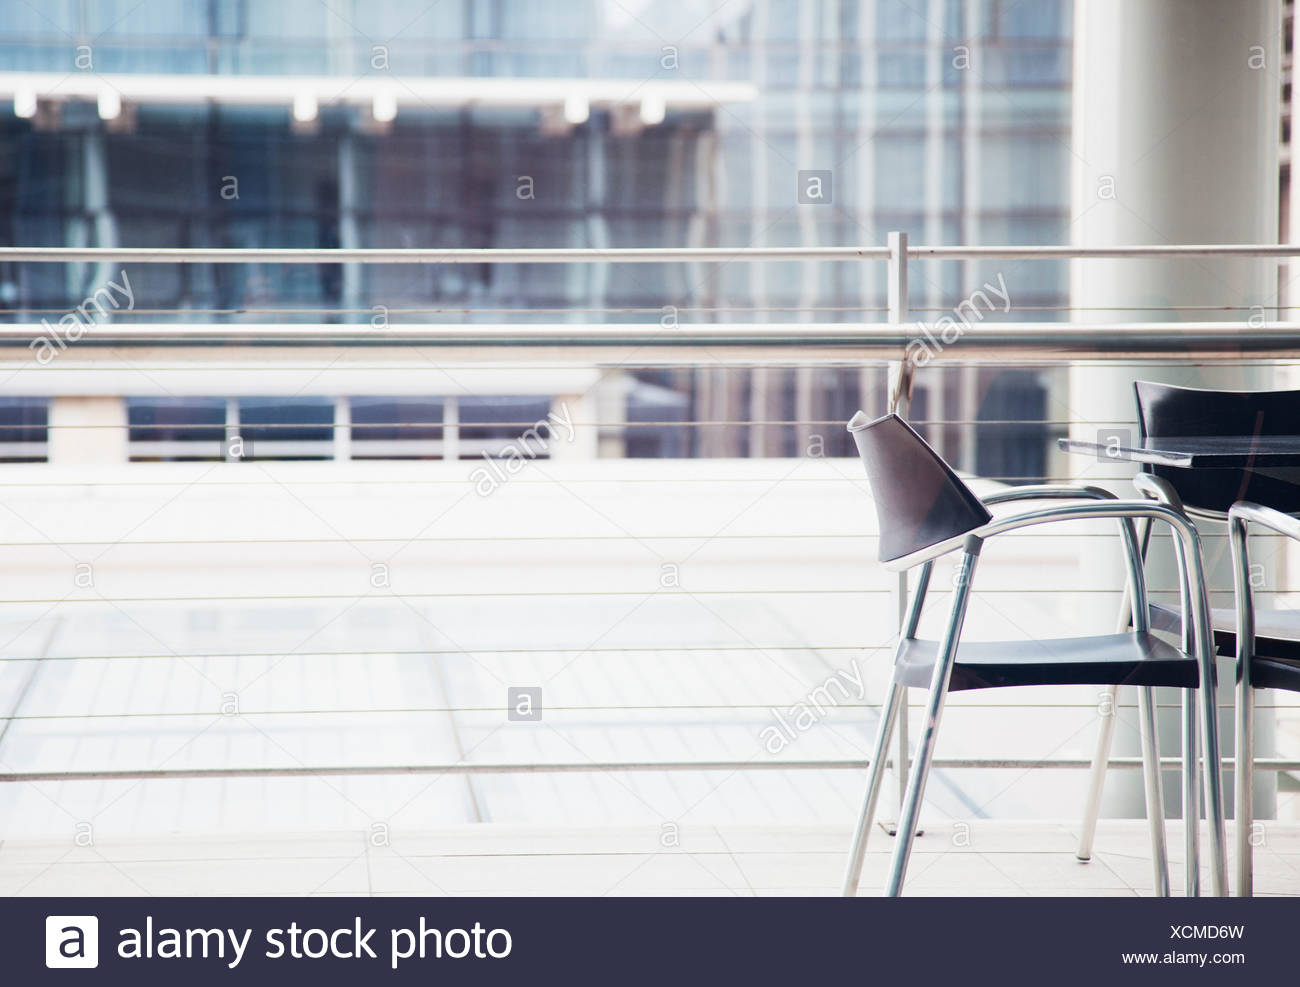 Chairs and table near window - Stock Image